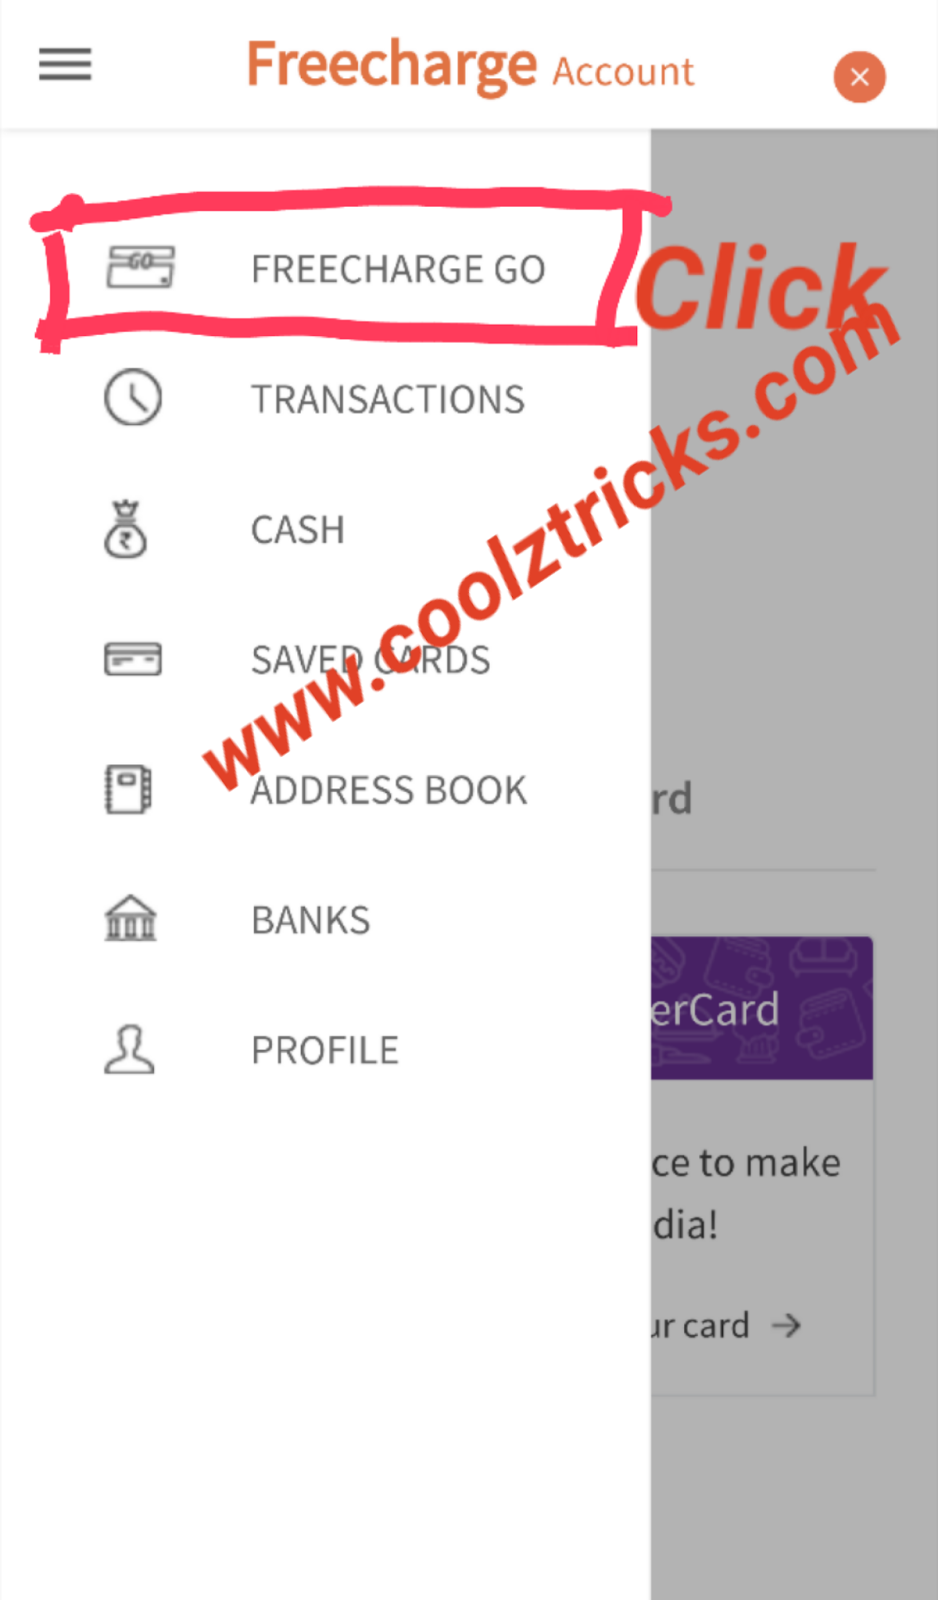 LOOT*] FREECHARGE APP TRICK-REFER AND EARN UNLIMITED TO BANK-APR'16